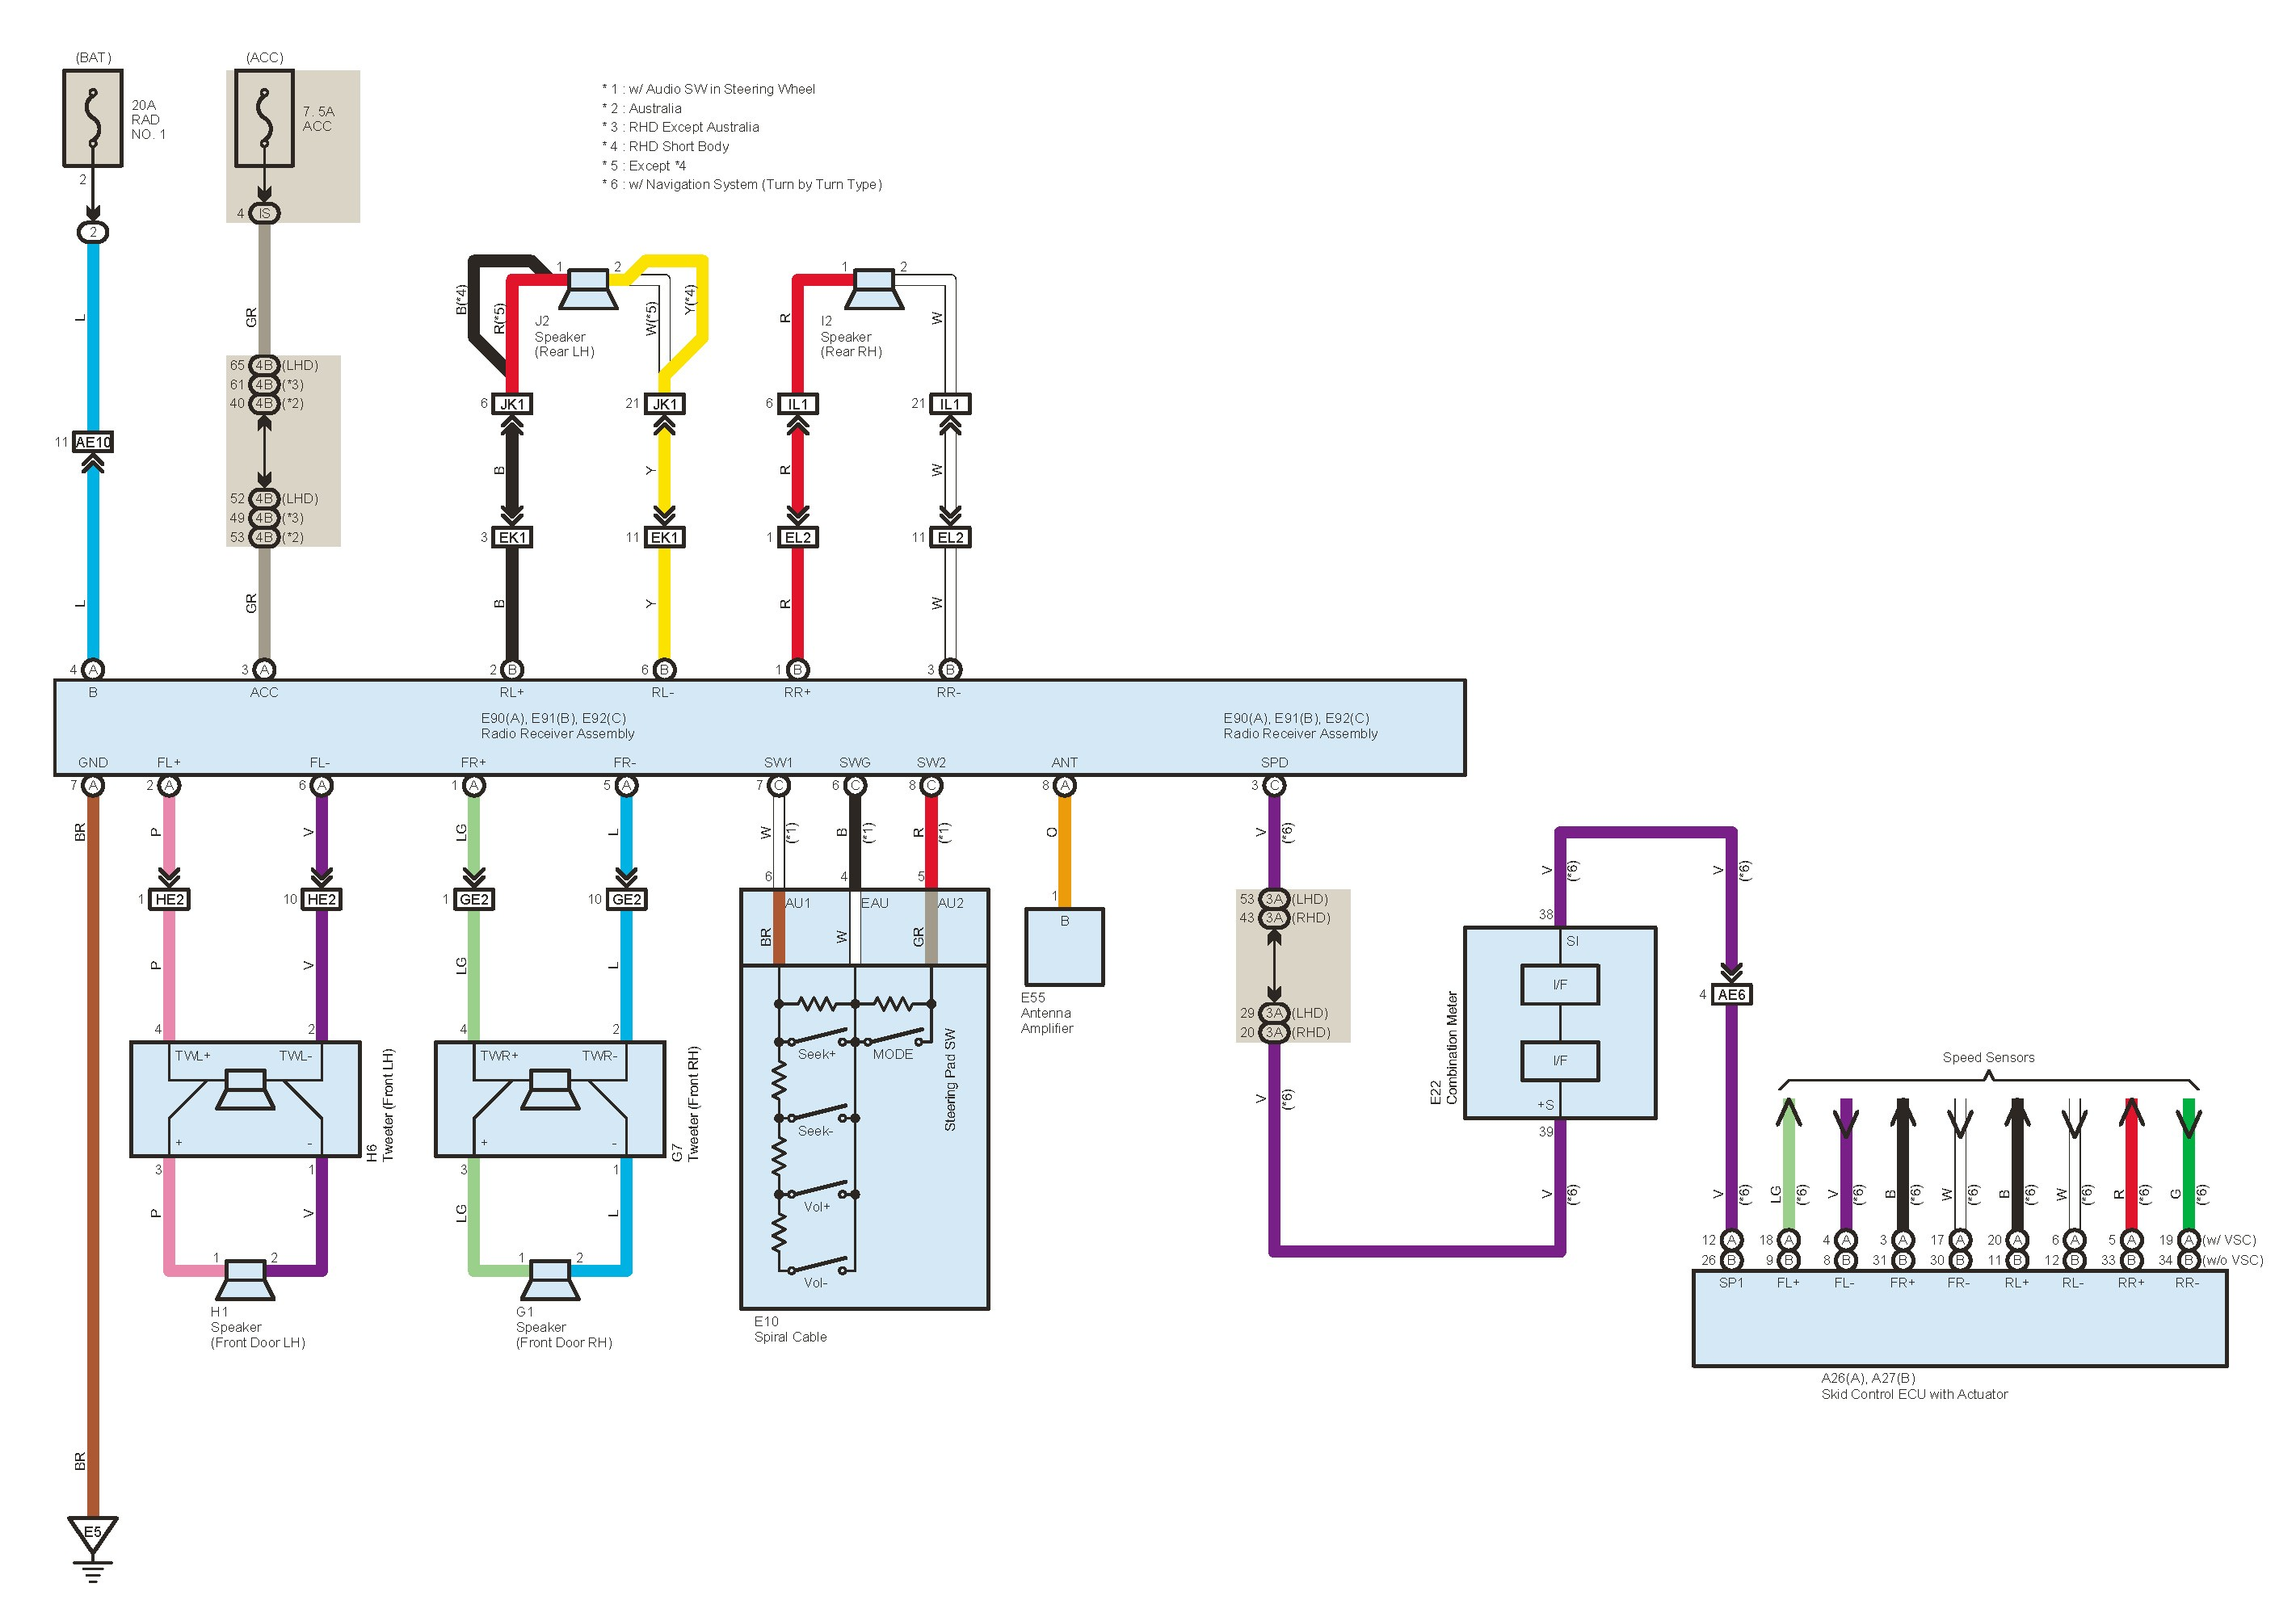 2007 Toyota Tundra Wiring Diagram Ford F350 Also 2000